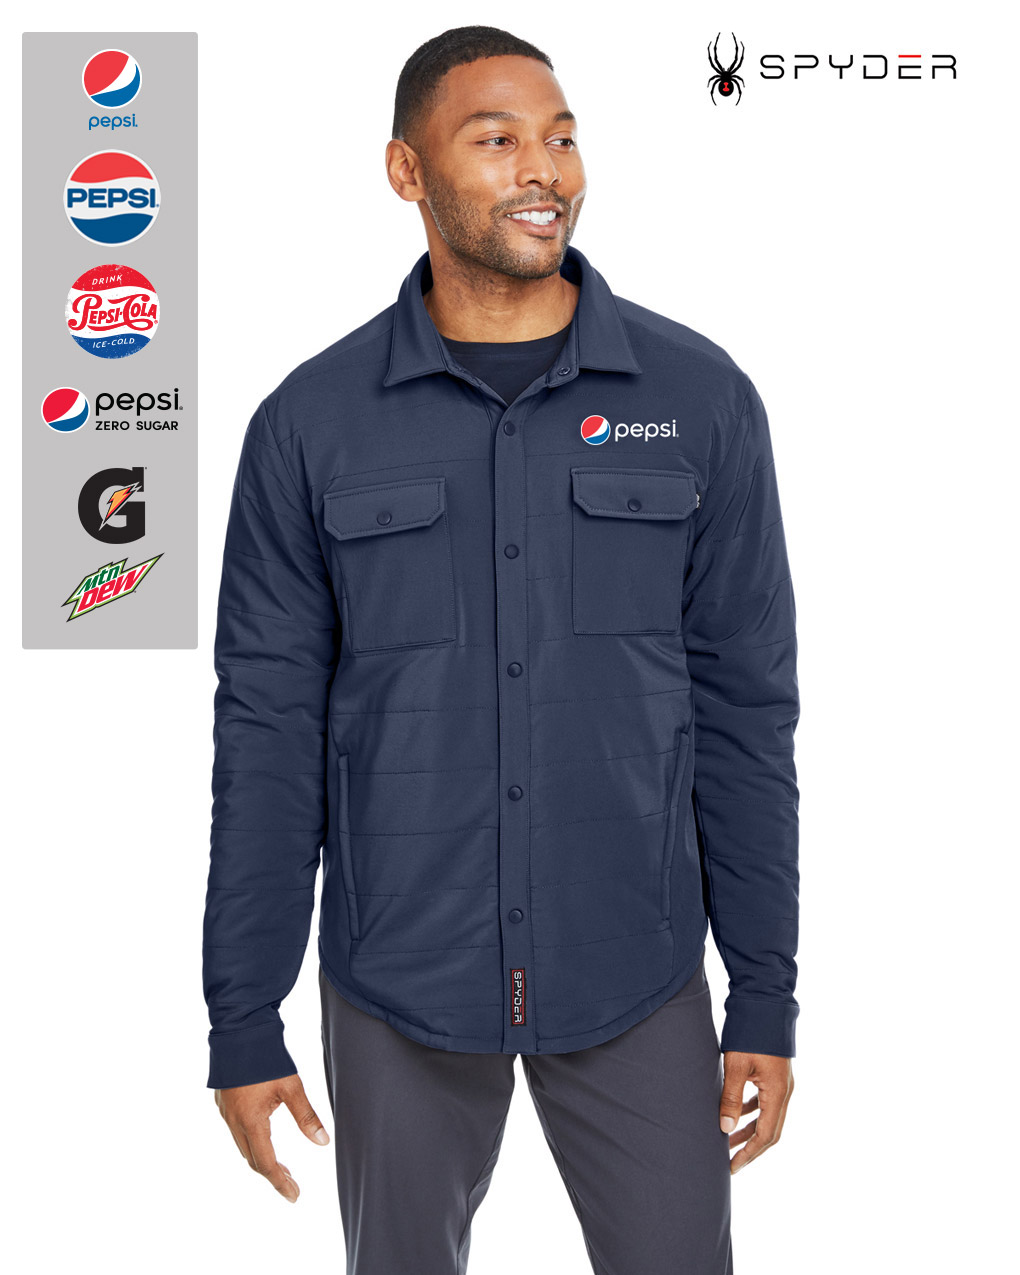 Spyder Adult Transit Shirt Jacket